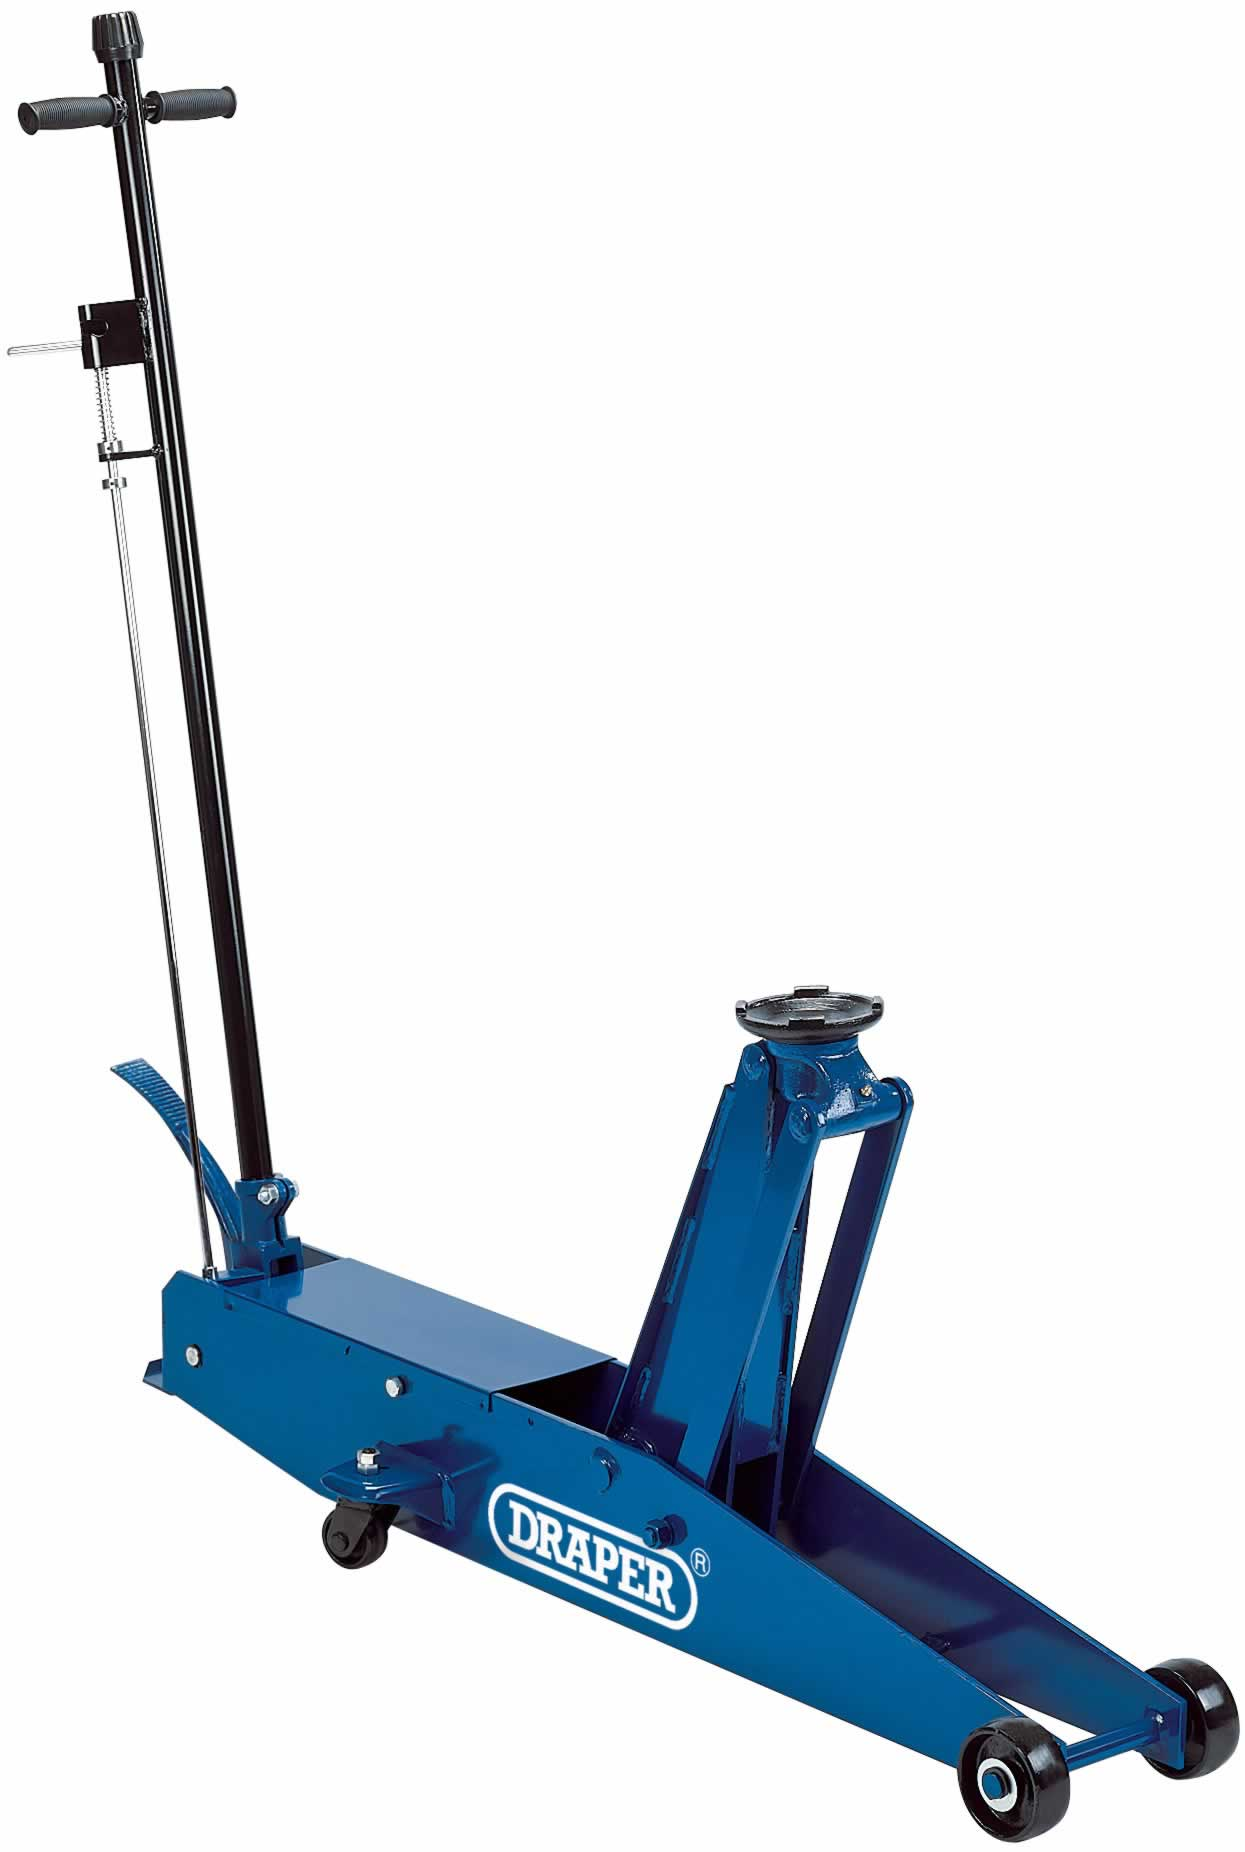 3 TONNE LONG CHASSIS HYDRAULIC TROLLEY JACK WITH 'QUICK LIFT' FACILITY